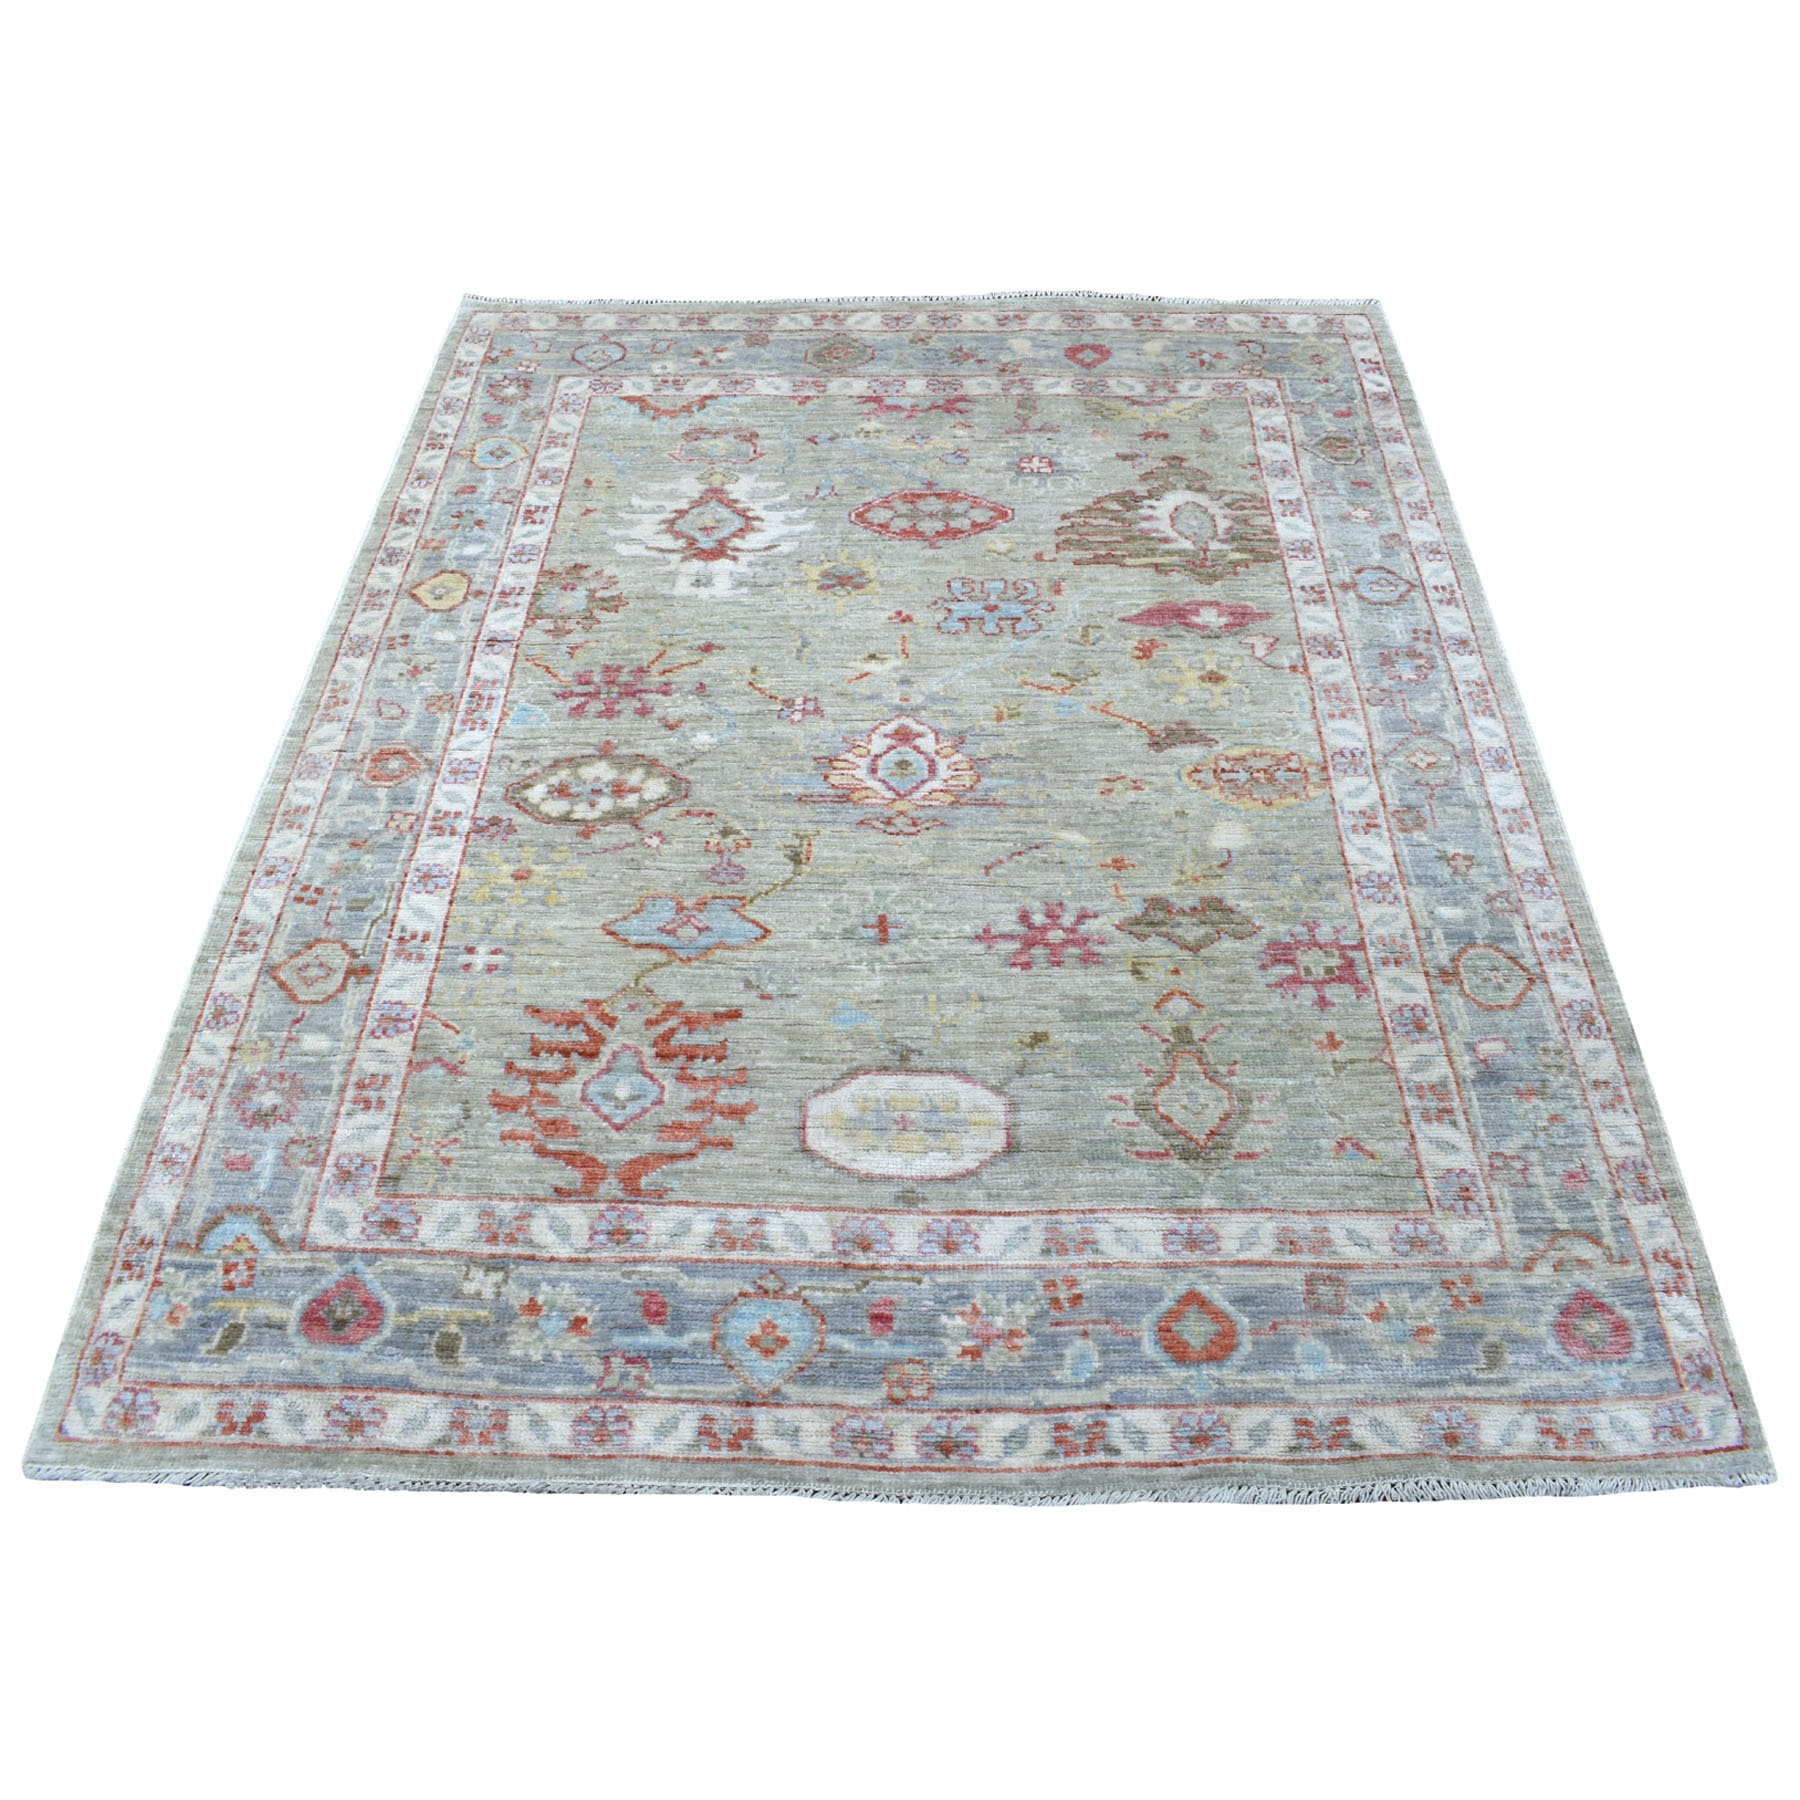 "5'1""x6'3"" Light Green Angora Oushak with soft Velvety wool Hand Knotted Oriental Rug"